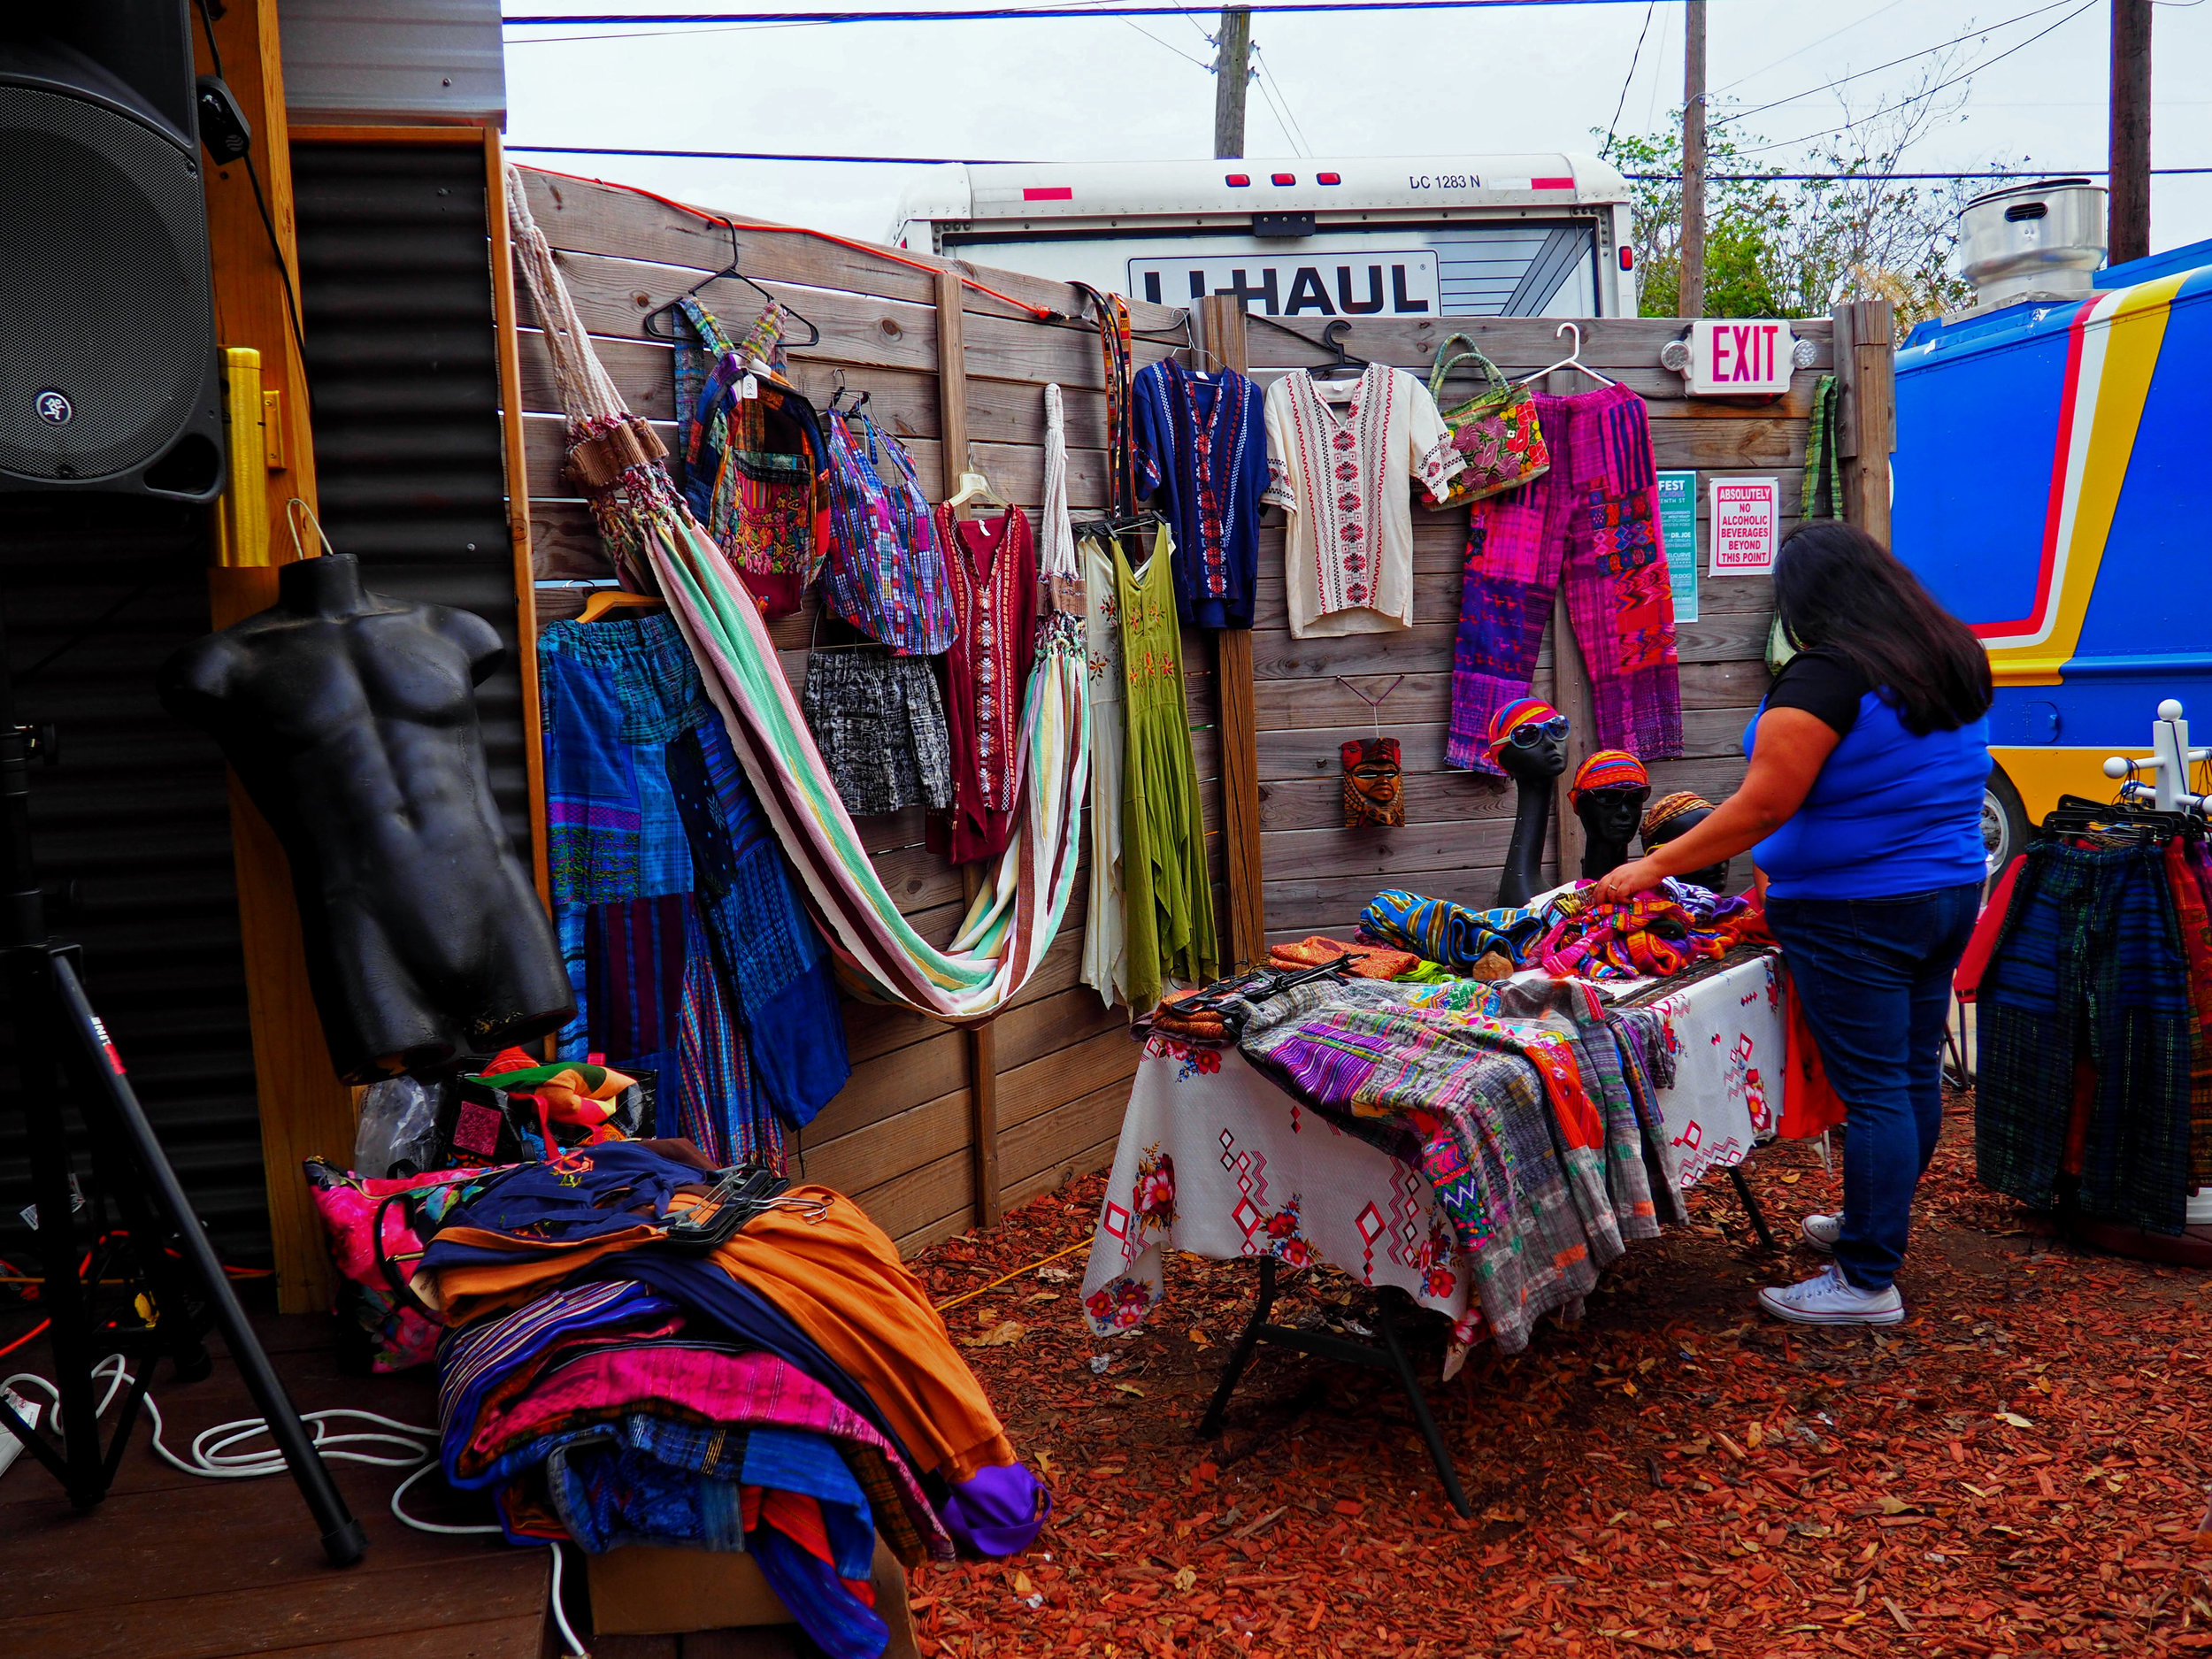 Hand-crafted goods for sale.